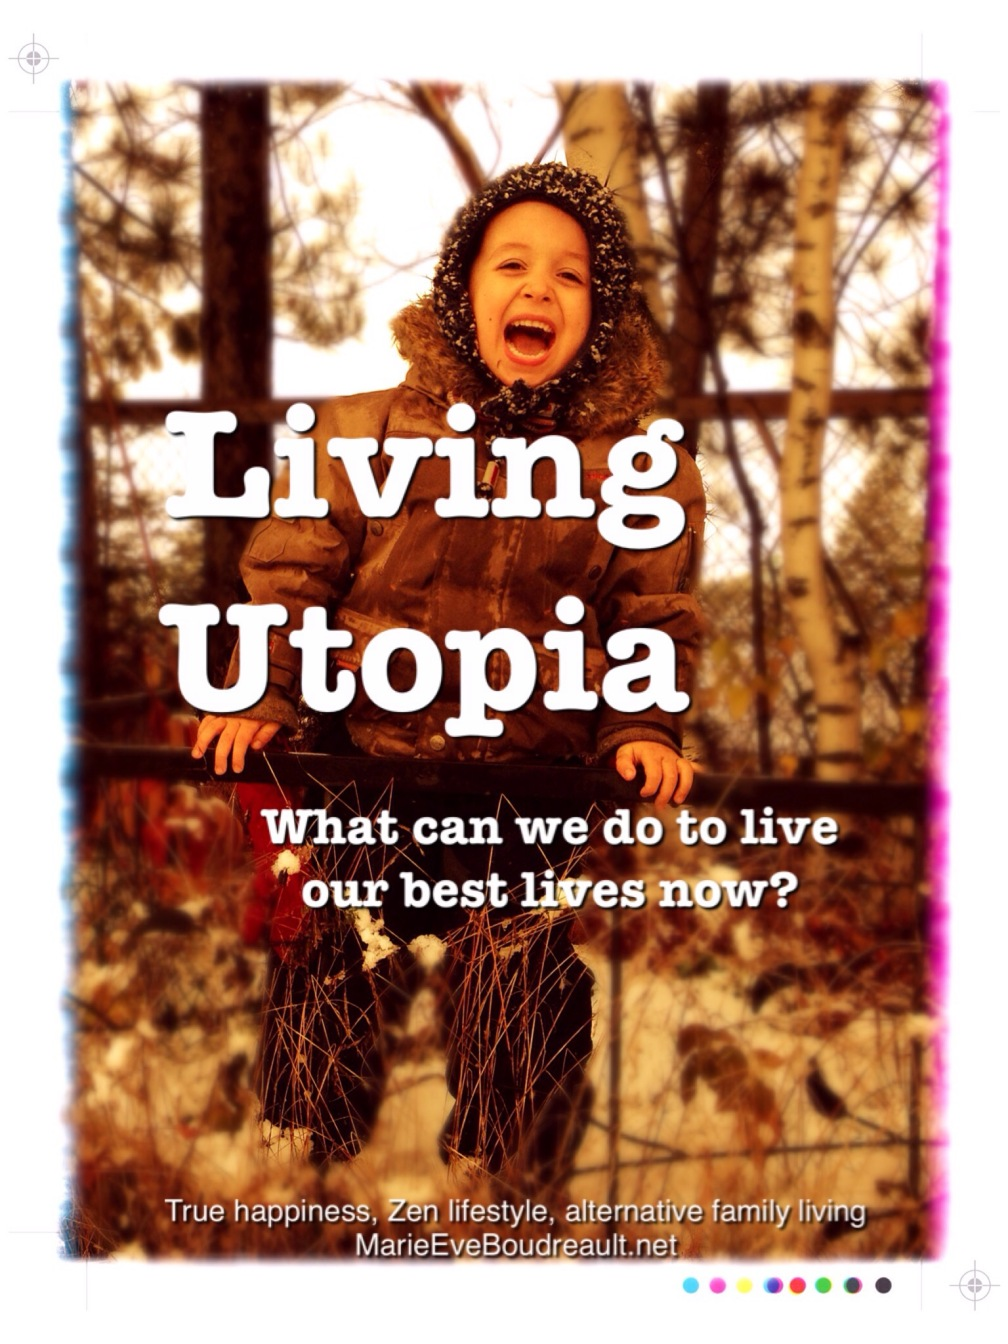 living utopia what can we do right now to live our best lives marie eve boudreault blog book zen lifestyle meaning of life dream awake